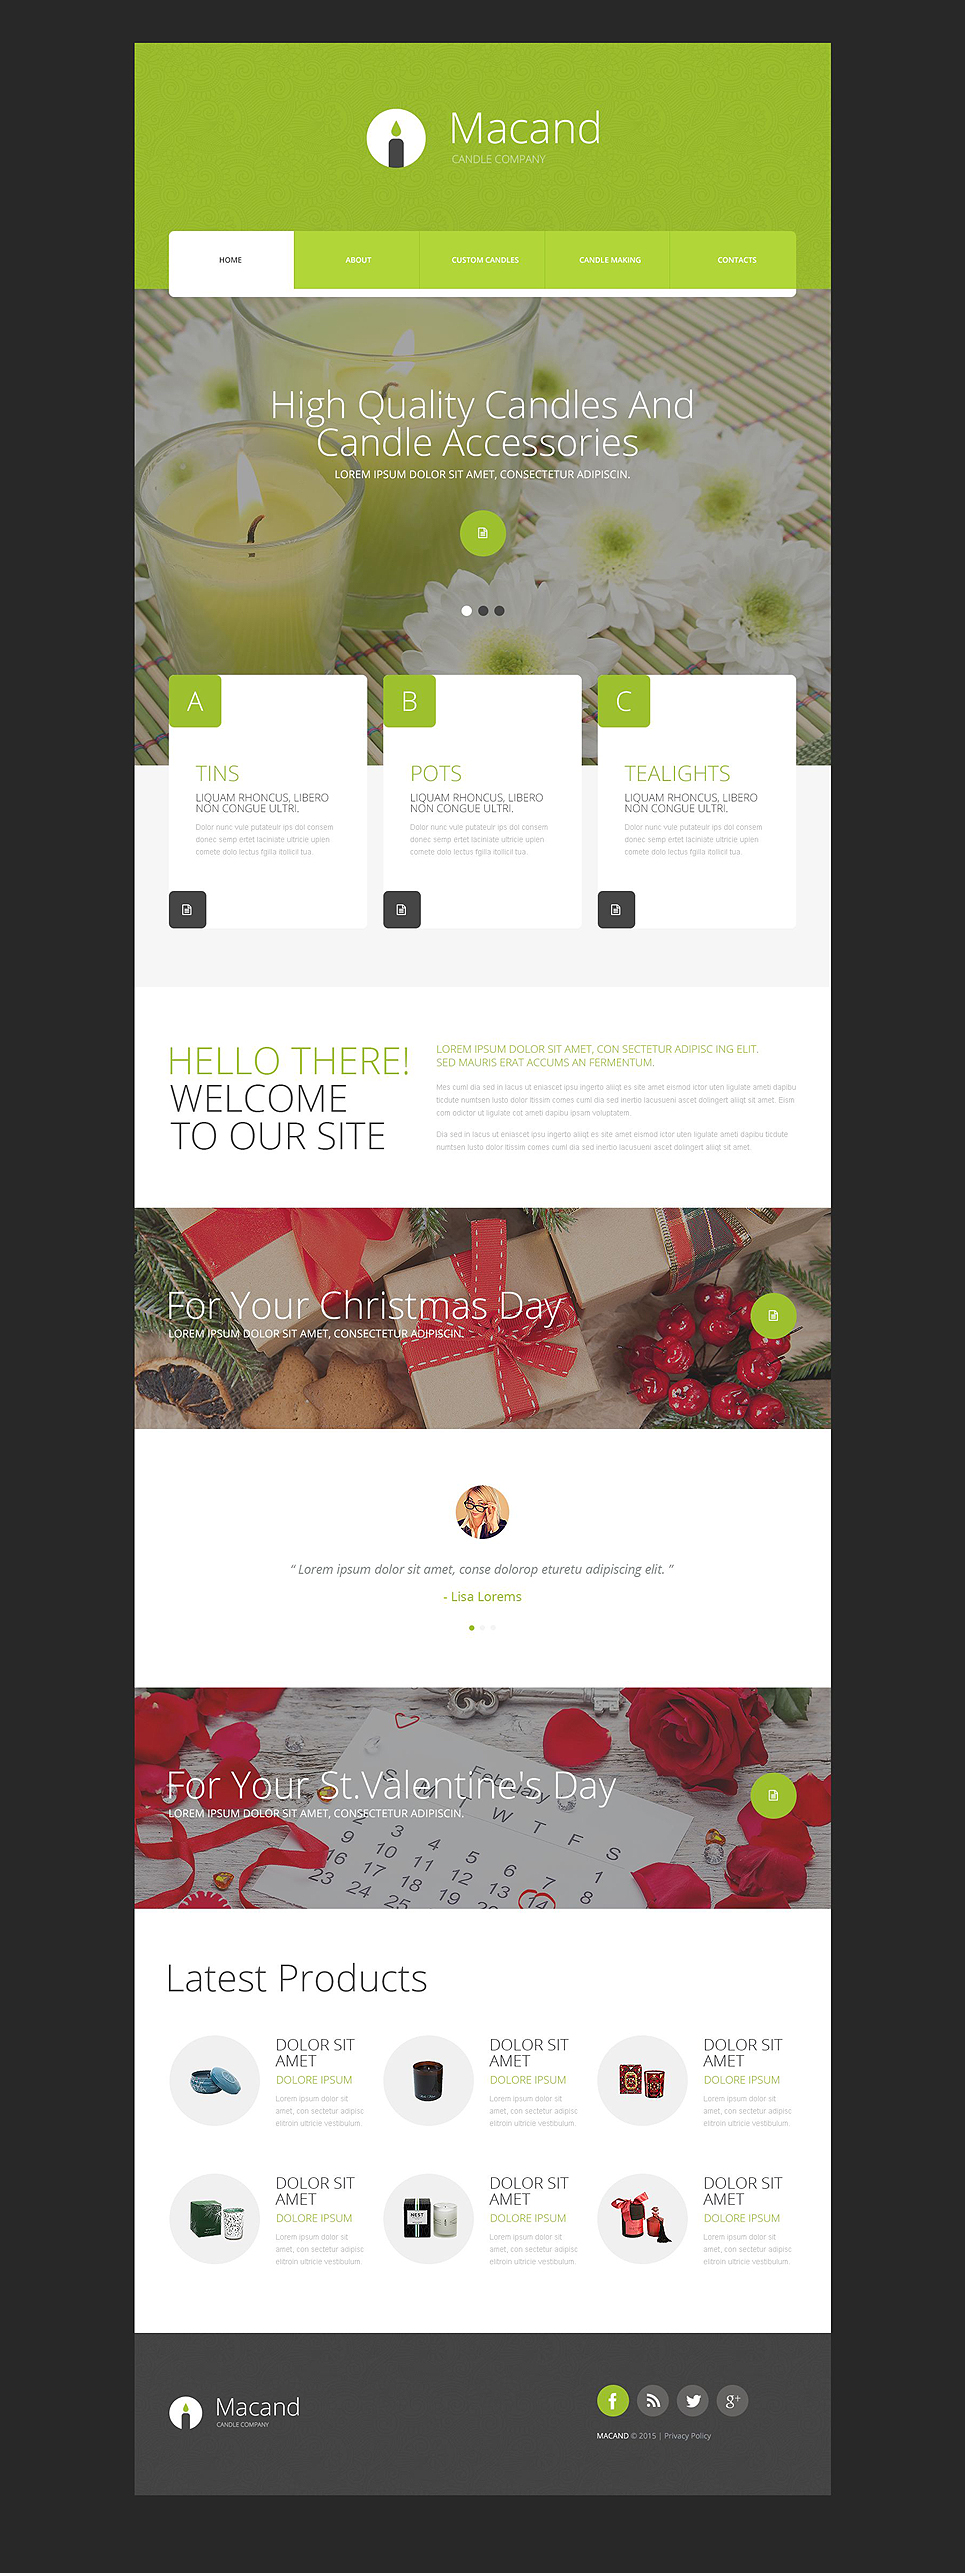 Gifts Store template illustration image